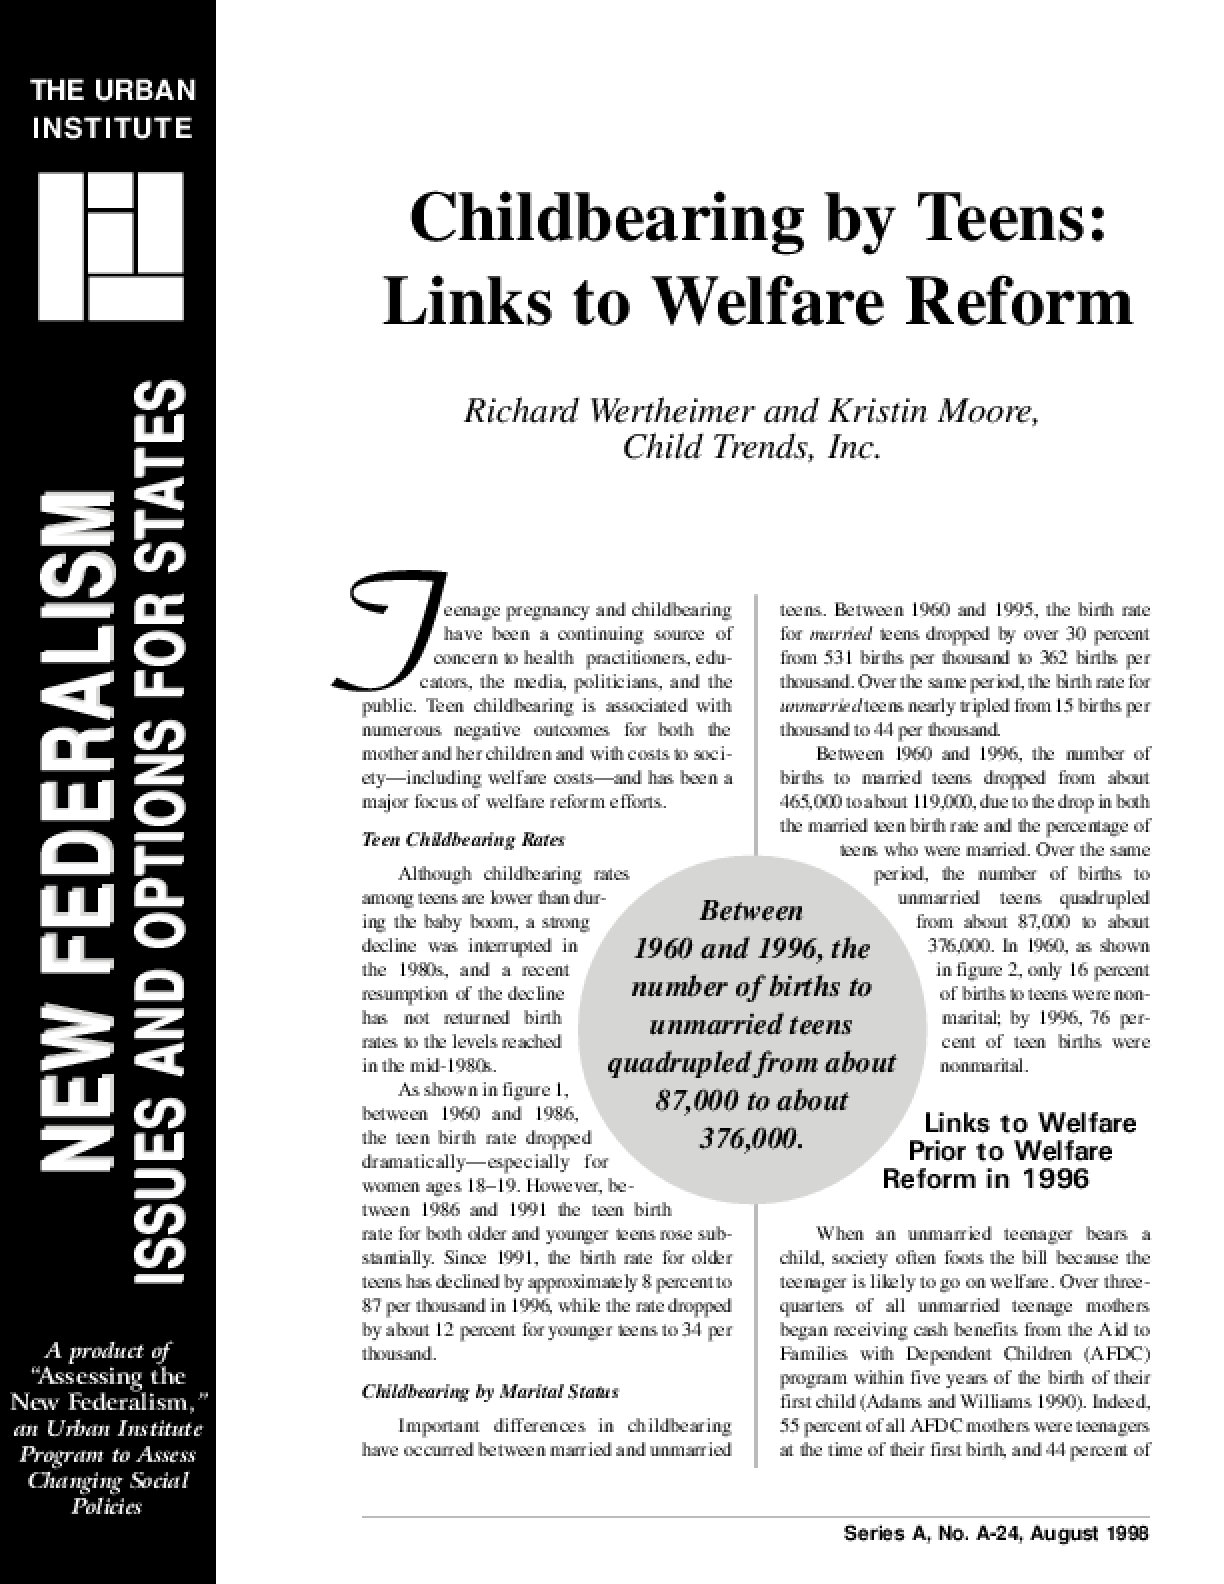 Childbearing by Teens: Links to Welfare Reform